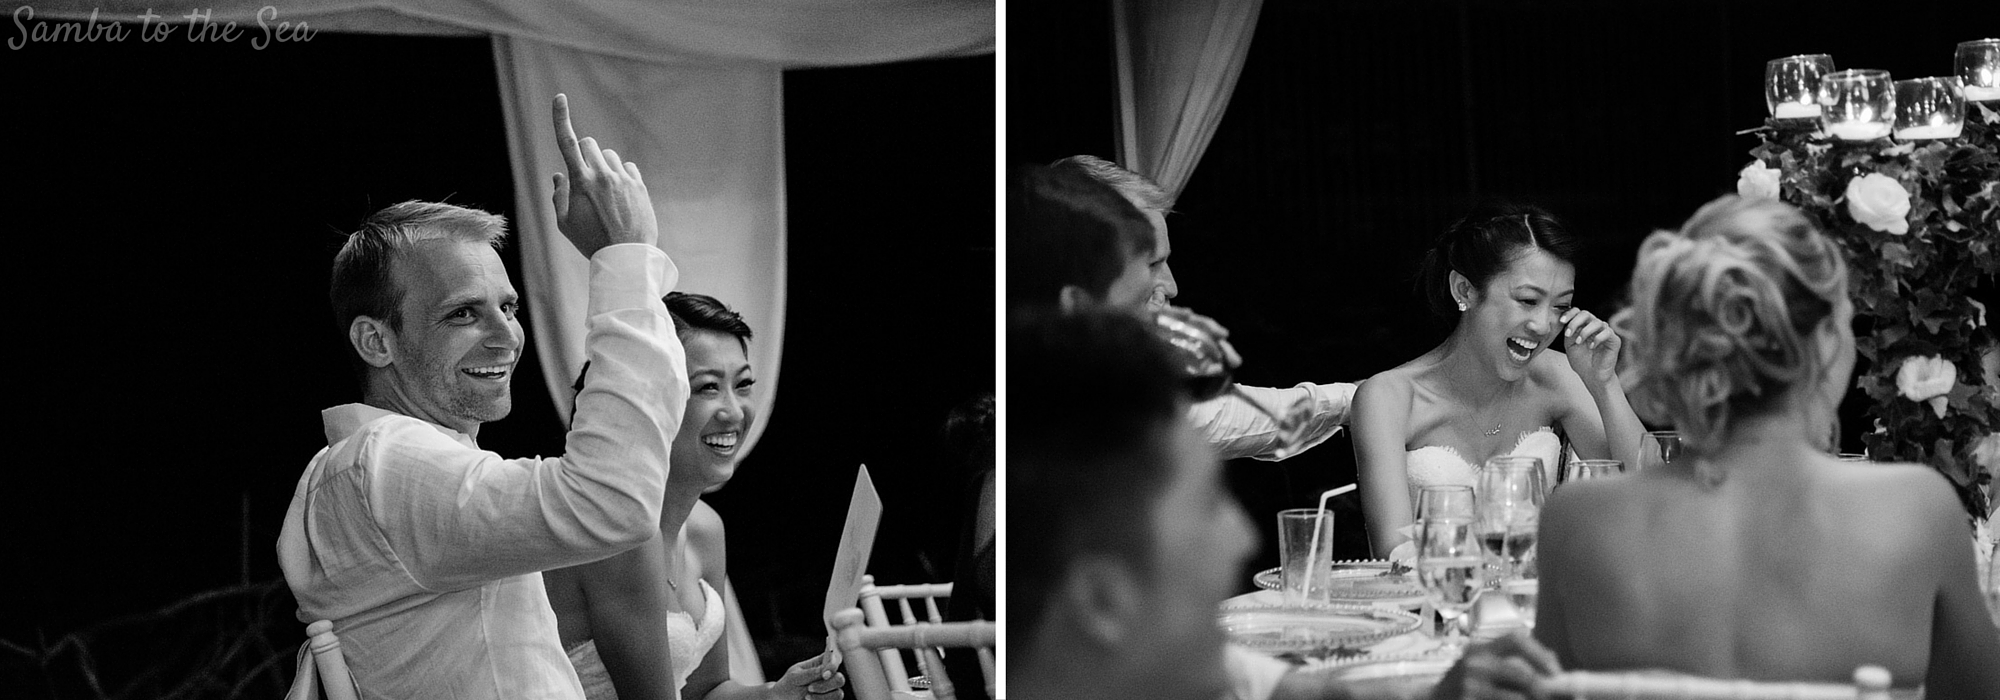 Bride and groom smiling during speeches at wedding in Tamarindo, Costa Rica. Photographed by Kristen M. Brown, Samba to the Sea Photography.